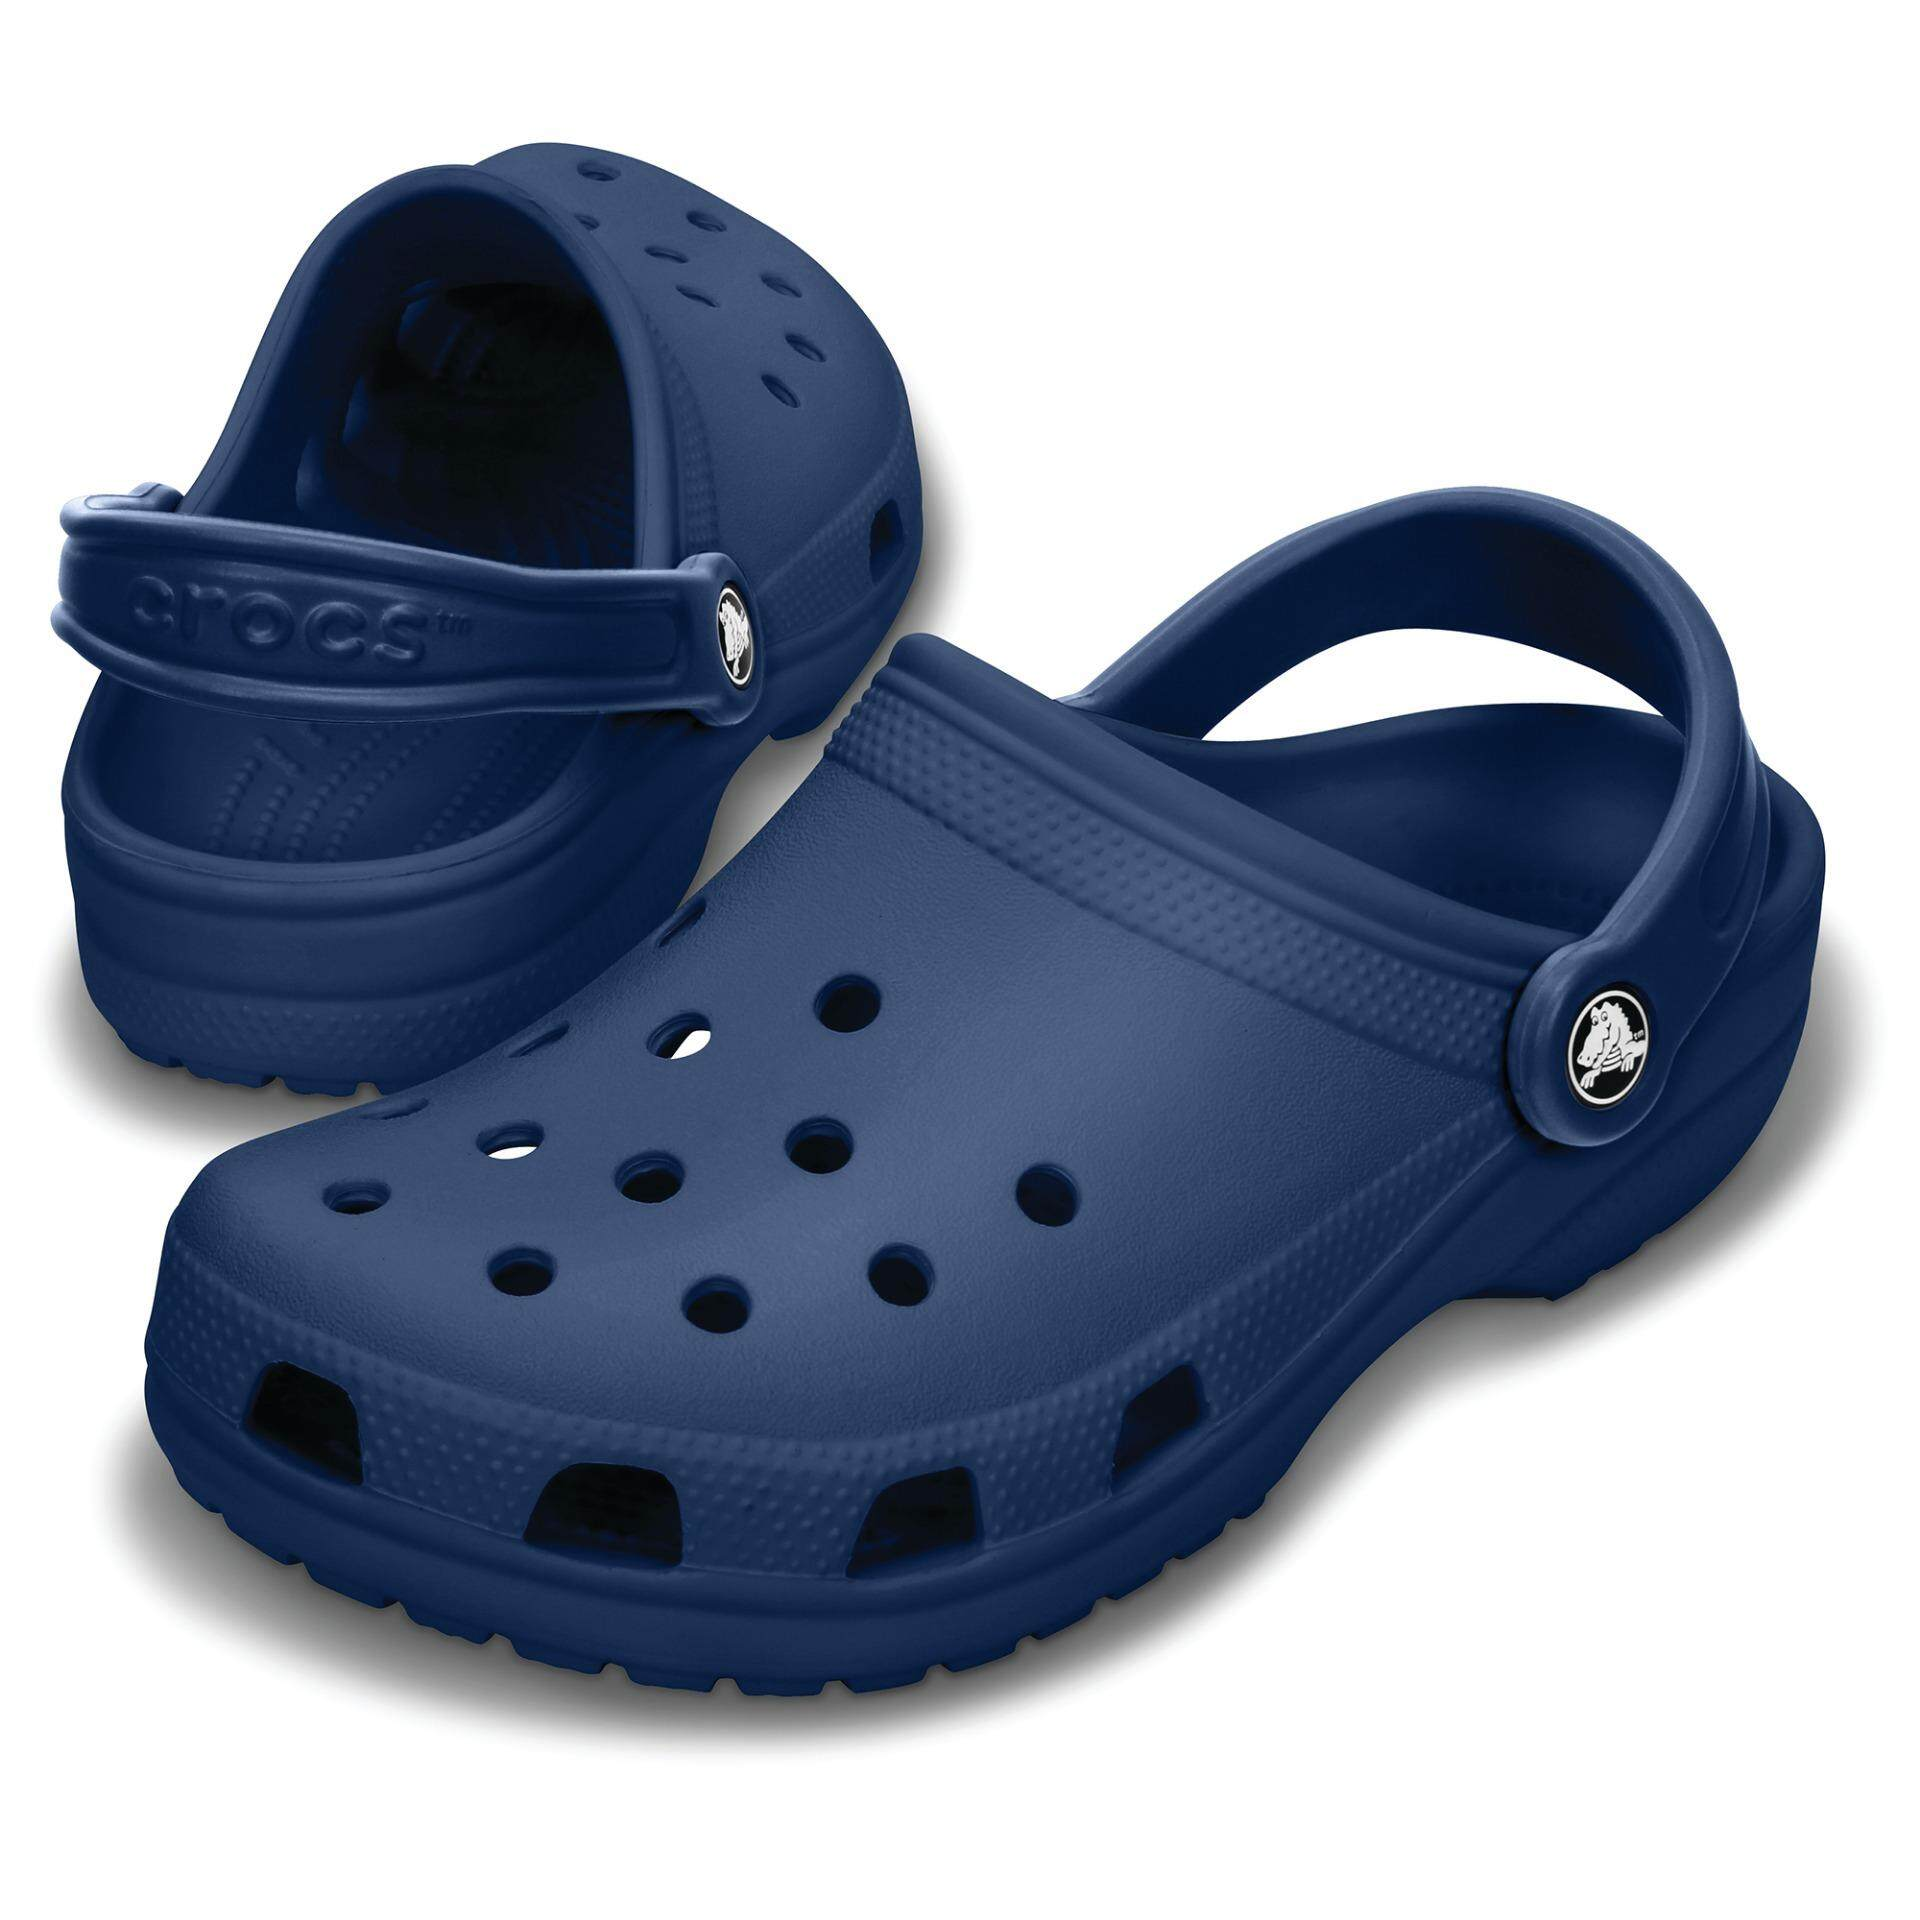 CROCS Products for the Best Prices in Malaysia